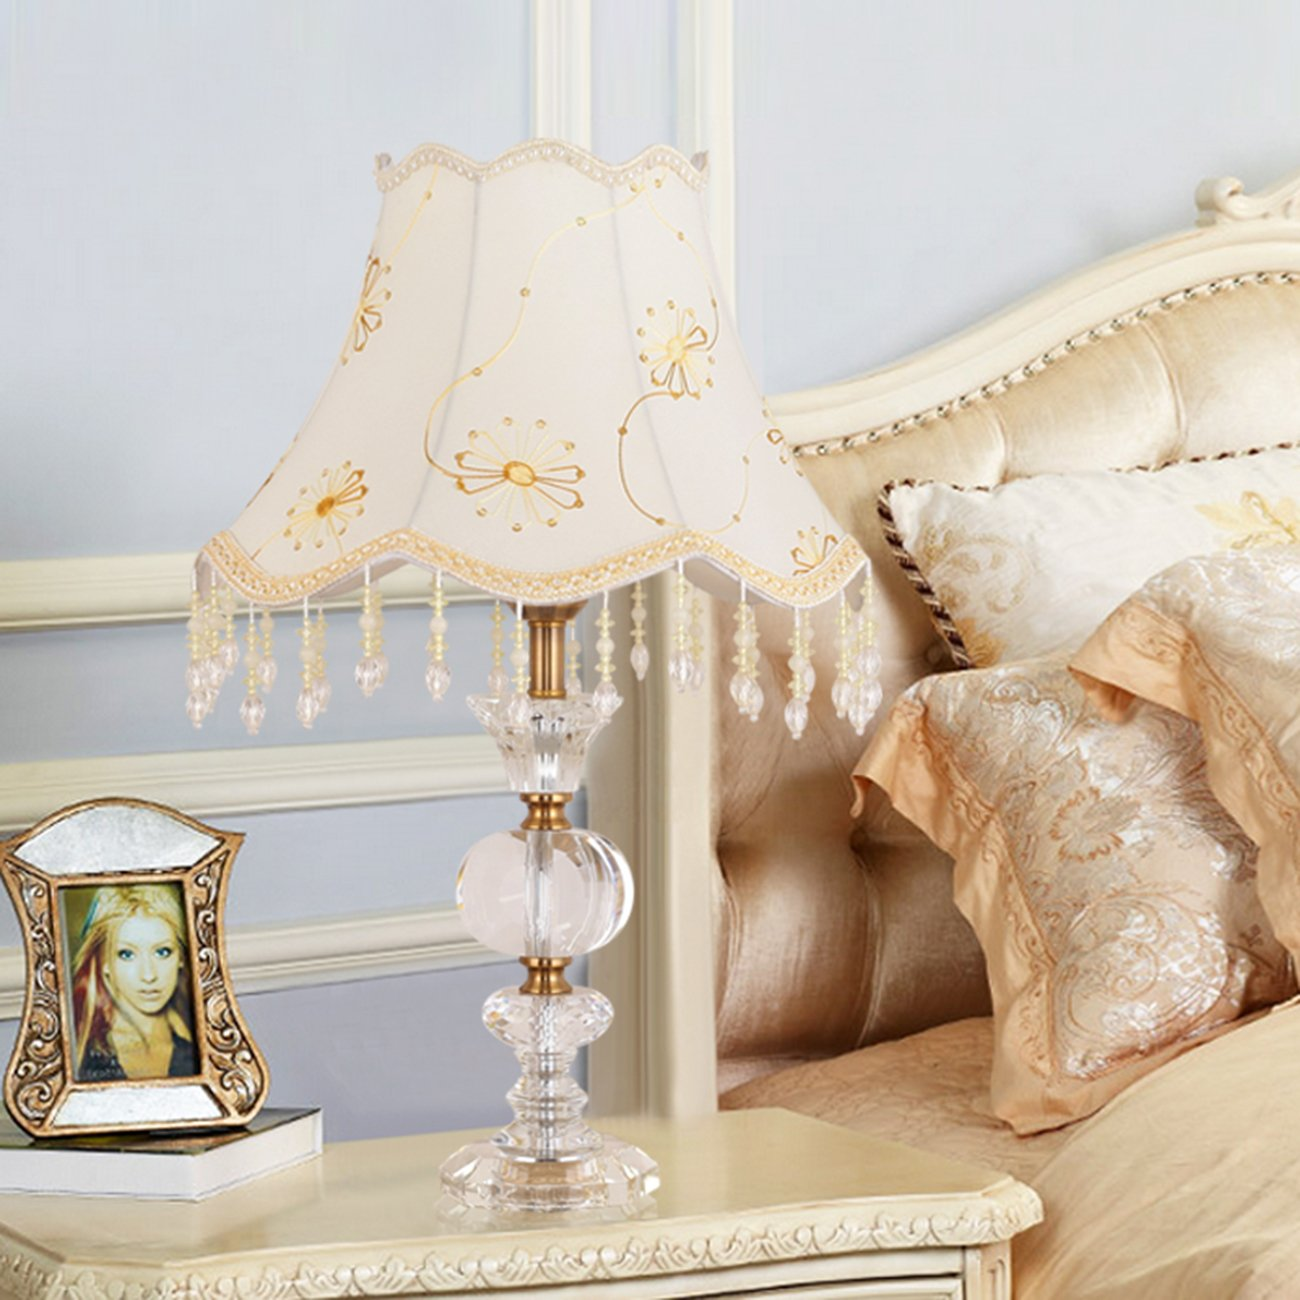 Garwarm Crystal Flower Table Lamps For Living Room Bedroom,3555CM/13.721.6 Inch WH